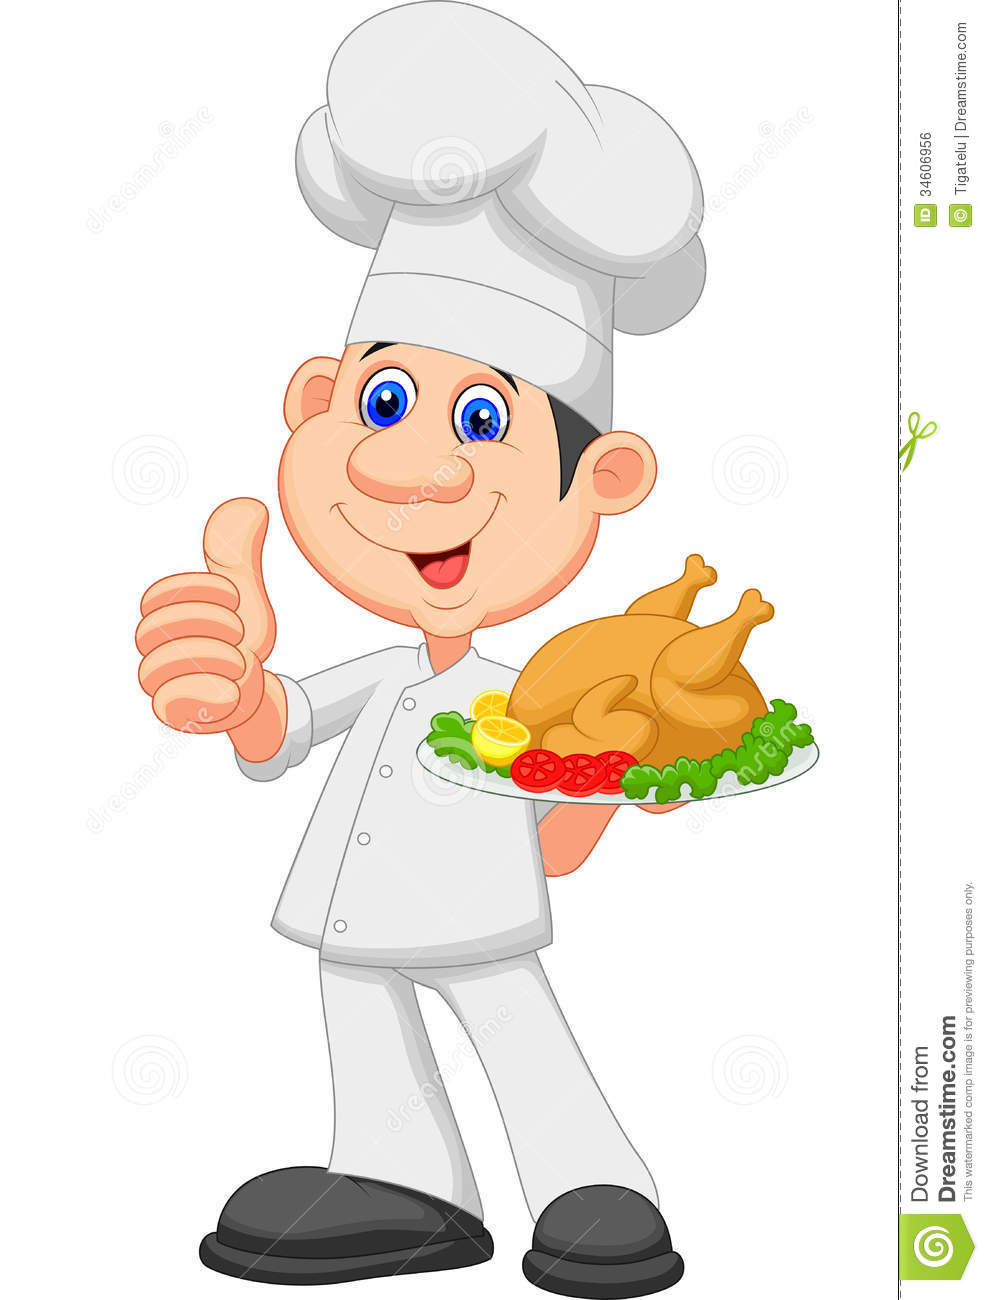 chef cartoon with roasted chicken stock vector barbeque clip art food inviting you to barbeque clipart cartoon